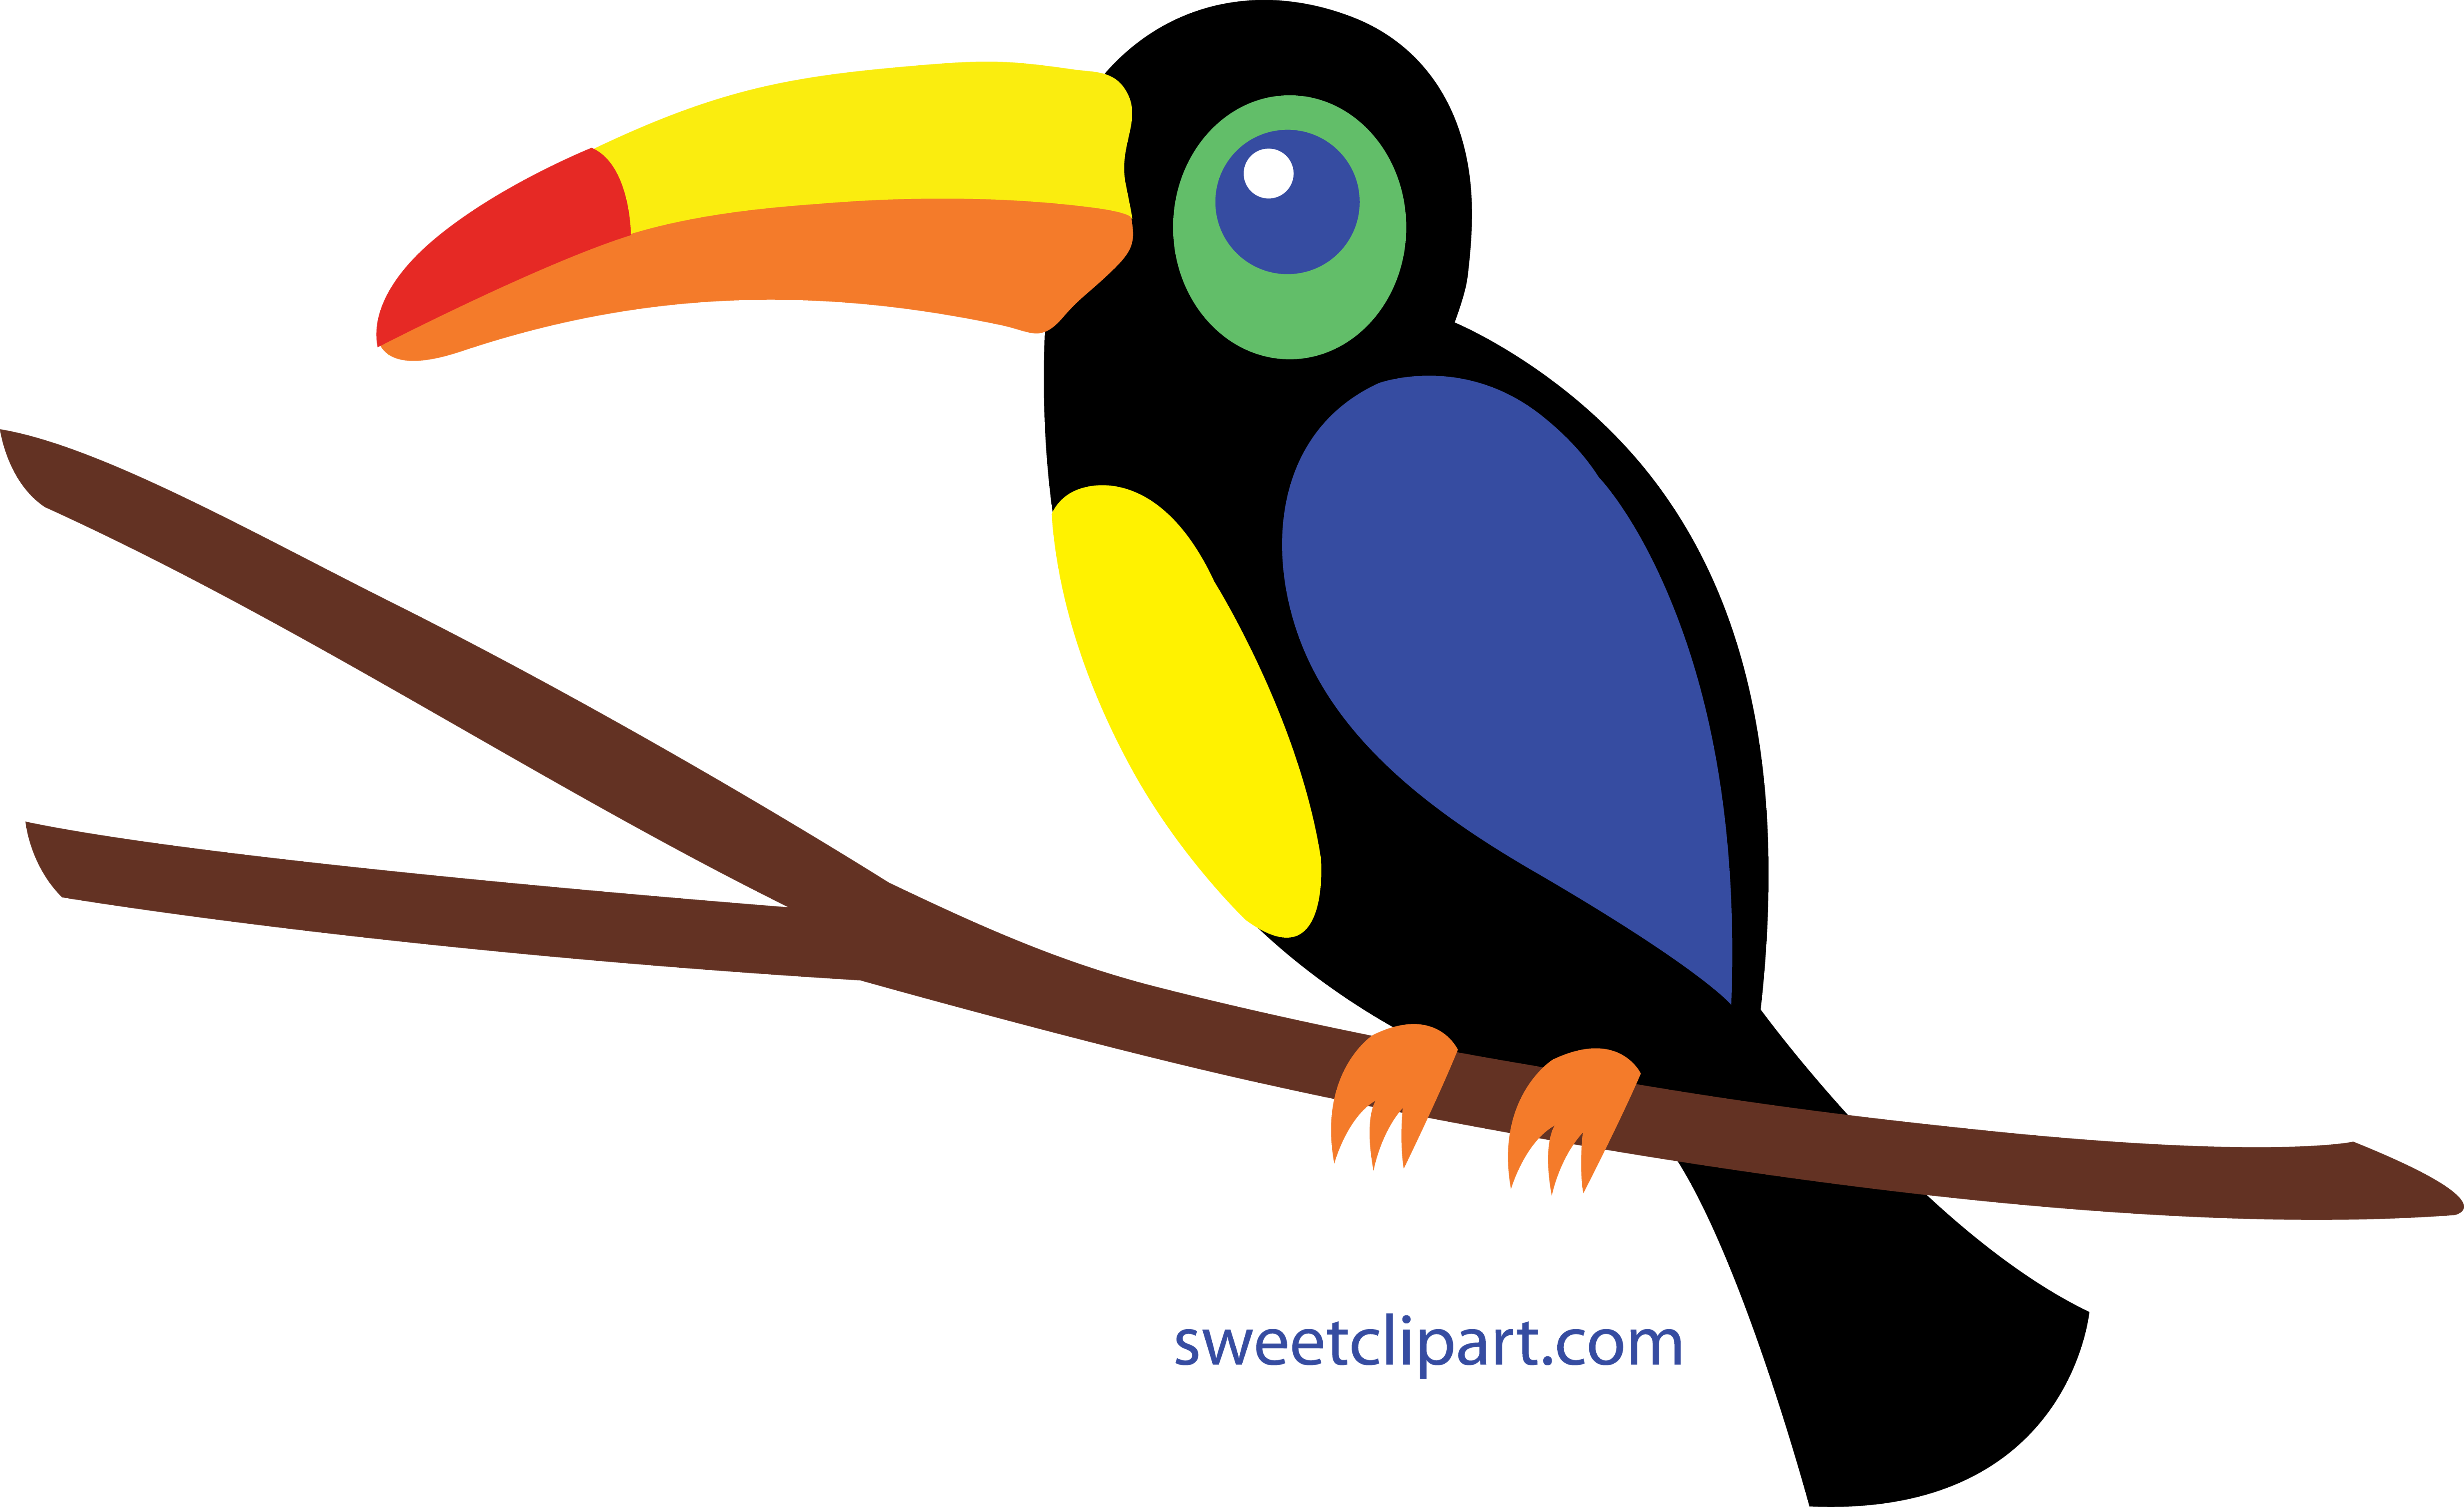 Tucan clipart - Clipground - 436.0KB